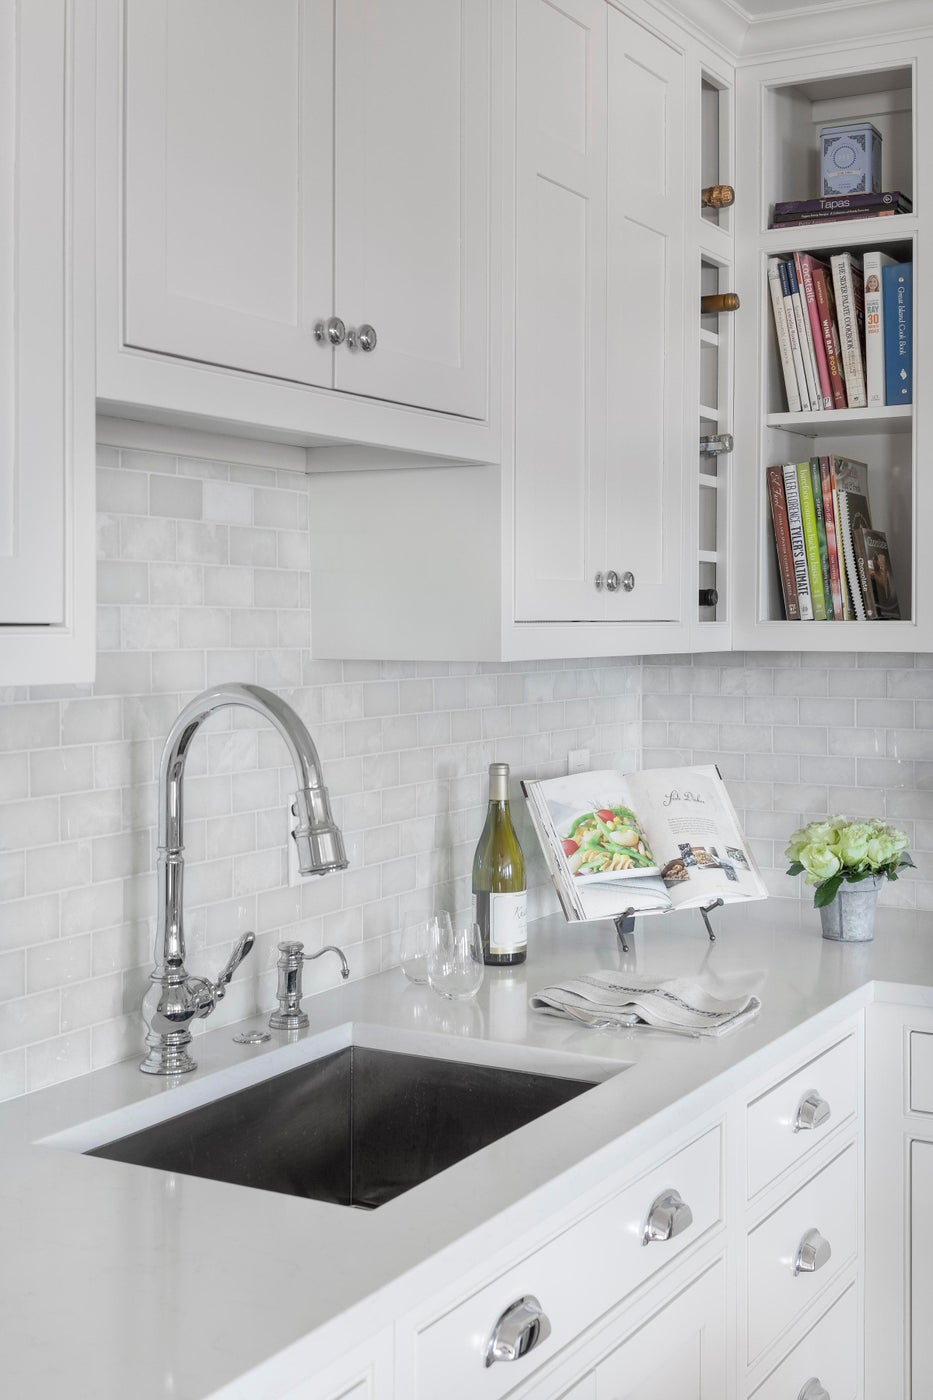 White and bright kitchen with a lobster pot size faucet